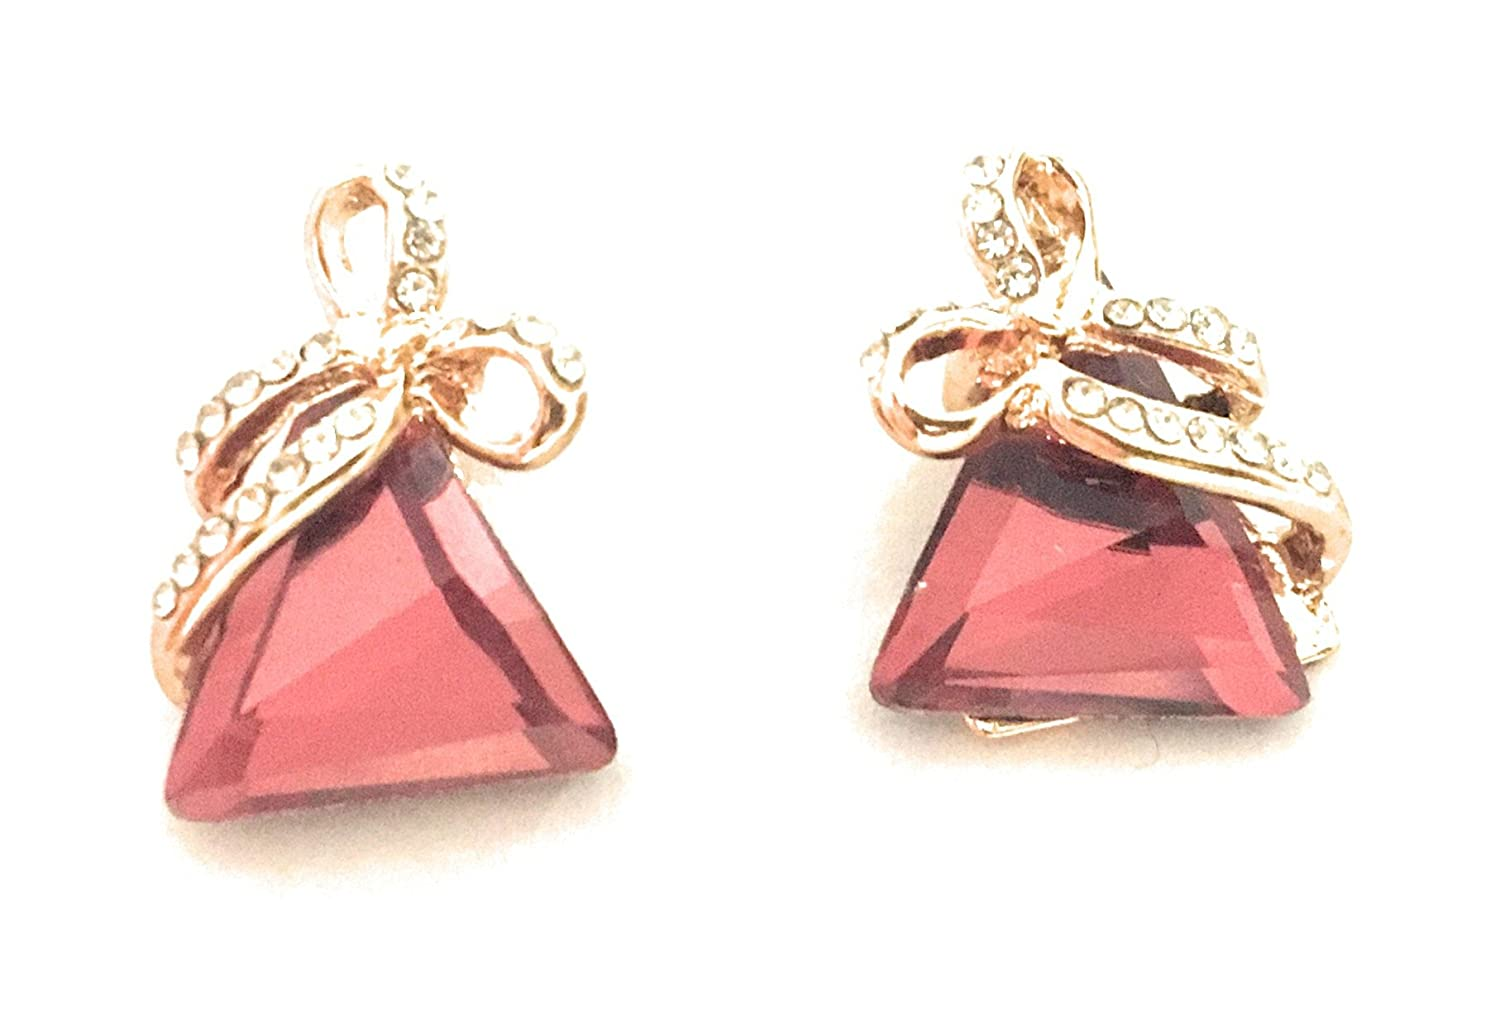 Maroon//Red Glitz Hot Fashion Exquisite Crystal Butterfly Stud Earrings for Girls//Women